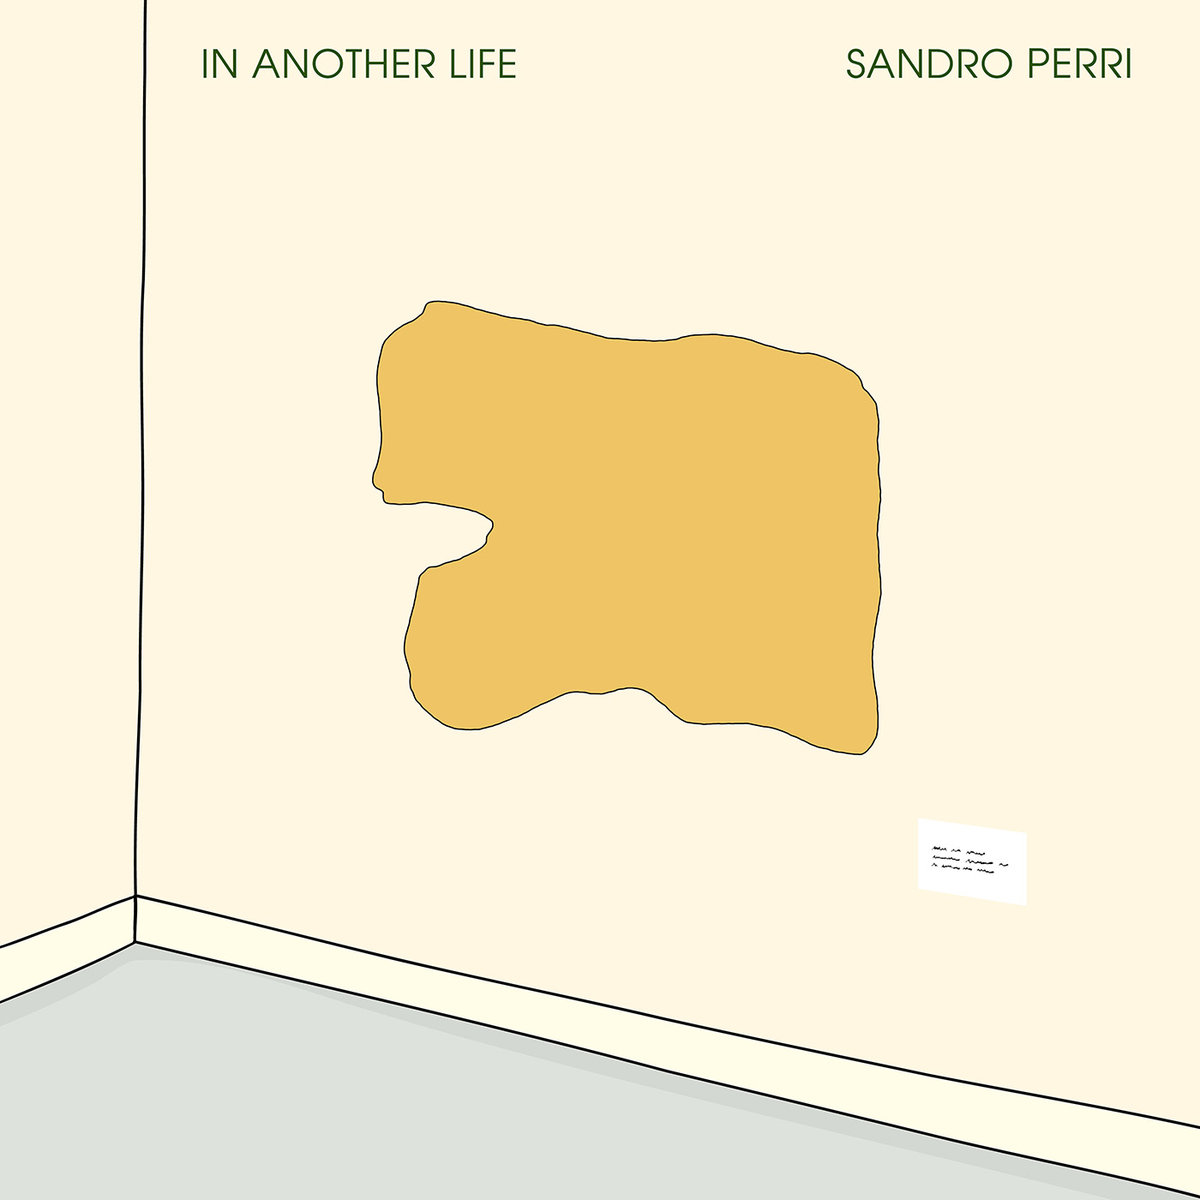 In Another Life - Sandro Perri